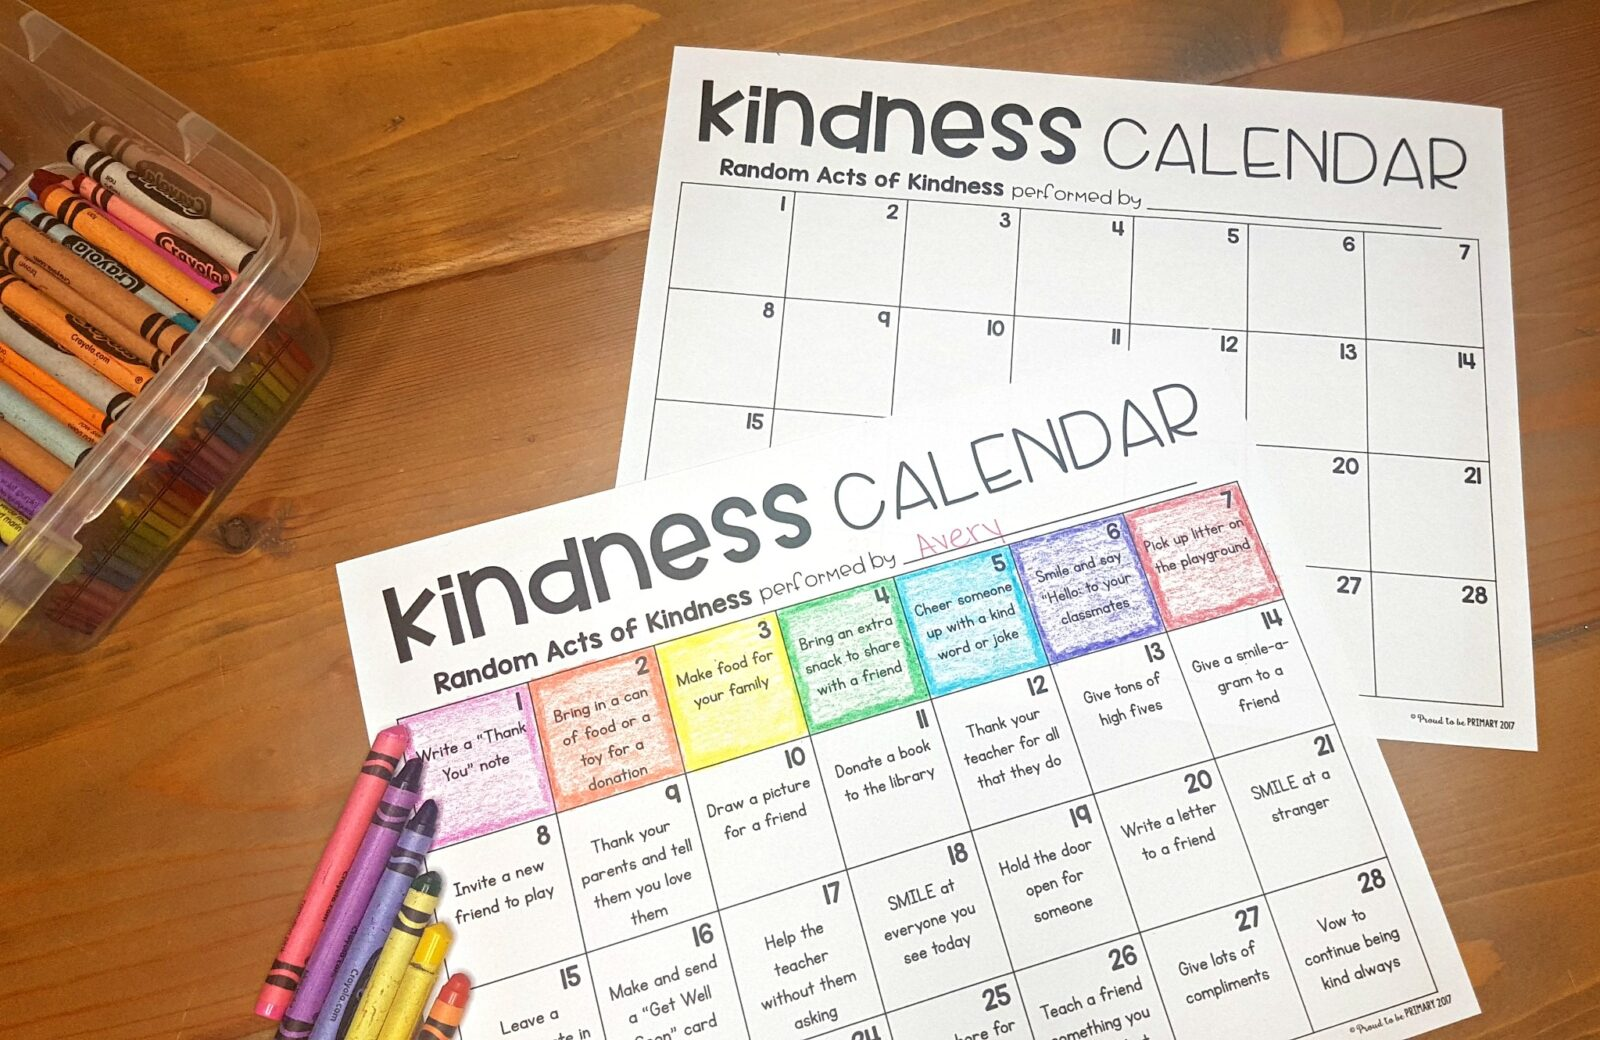 kindness calendar on table with crayons